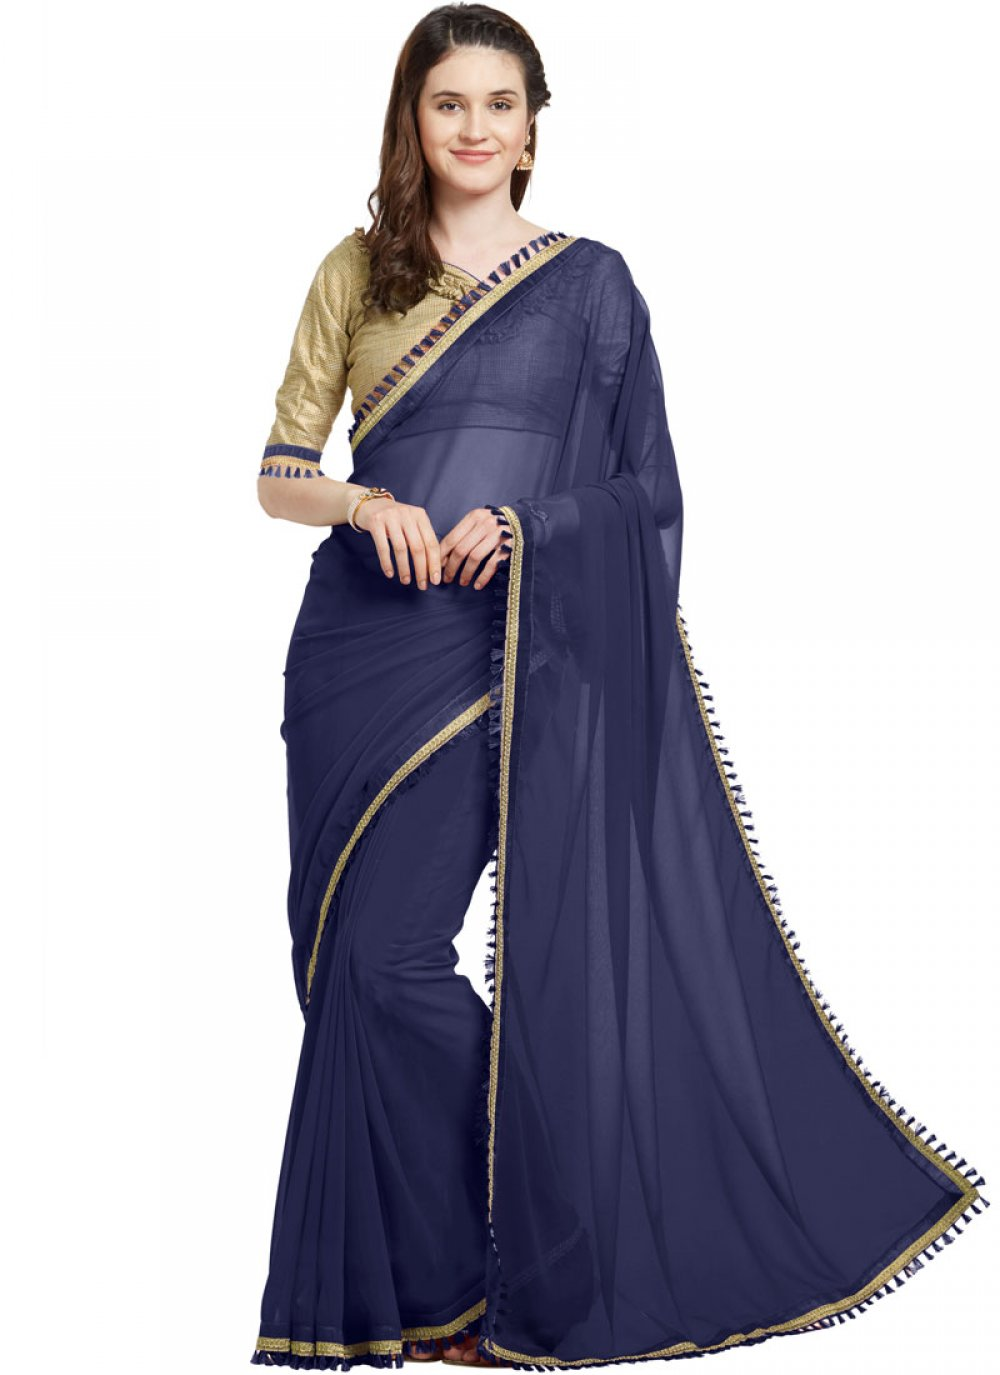 Lace Faux Georgette Casual Saree in Navy Blue